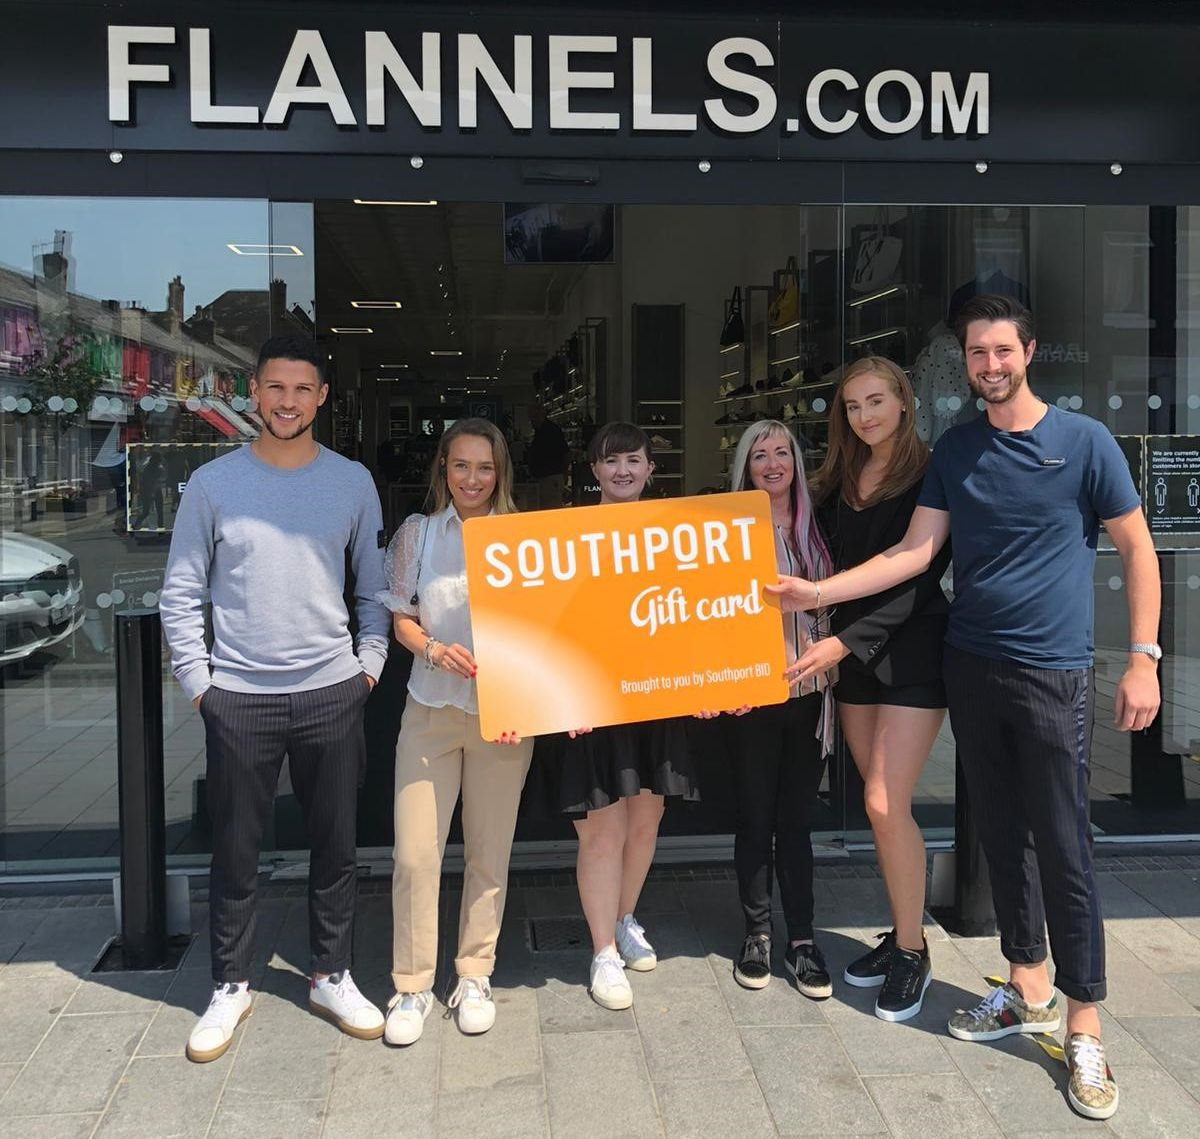 Flannels manager Grant Tindell (right) and staff members welcome the arrival of the brand new Southport Gift Card